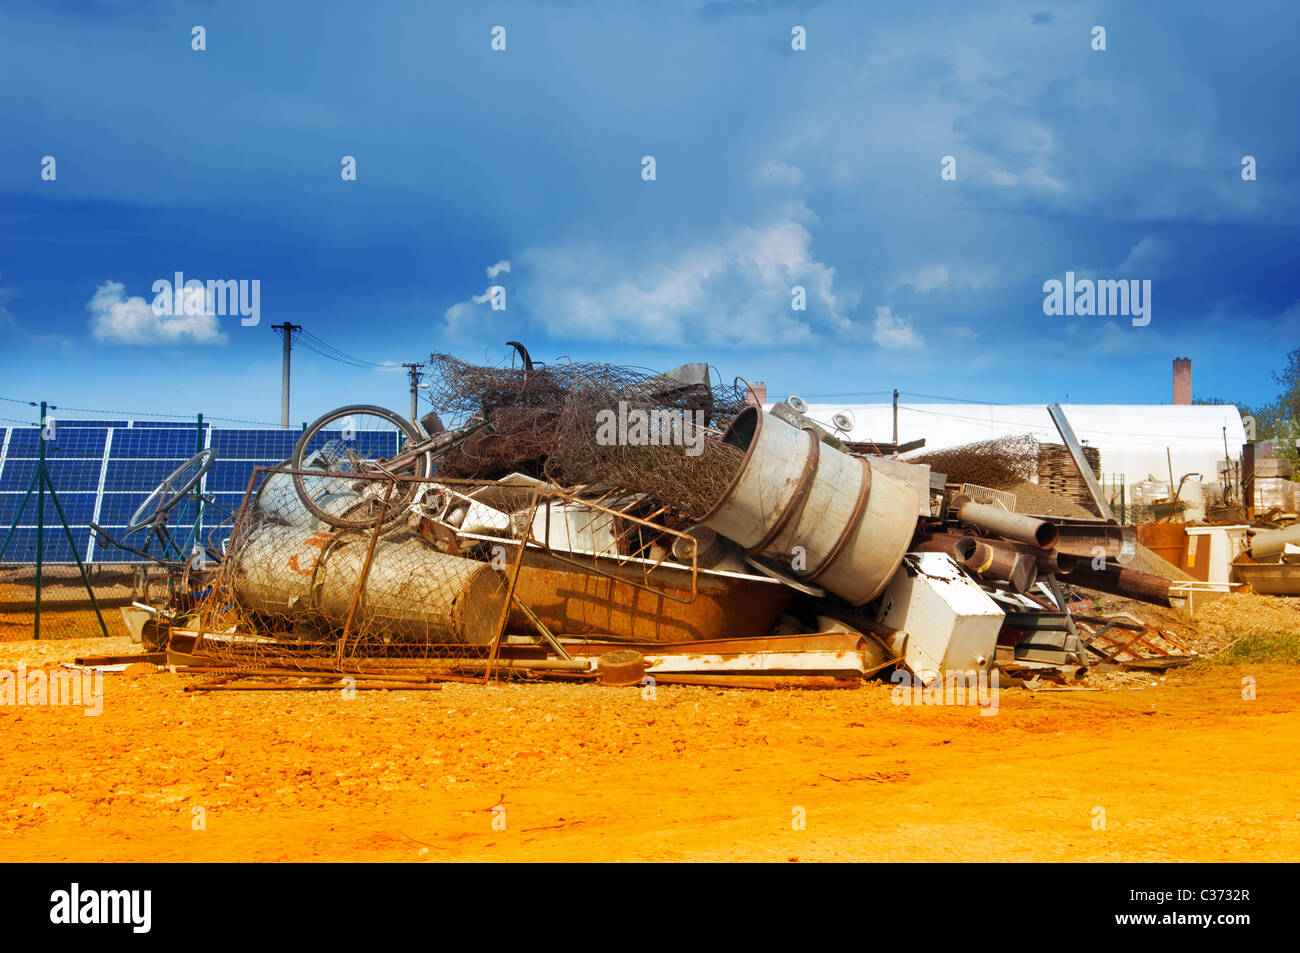 rust mess in nature - pollution - Stock Image